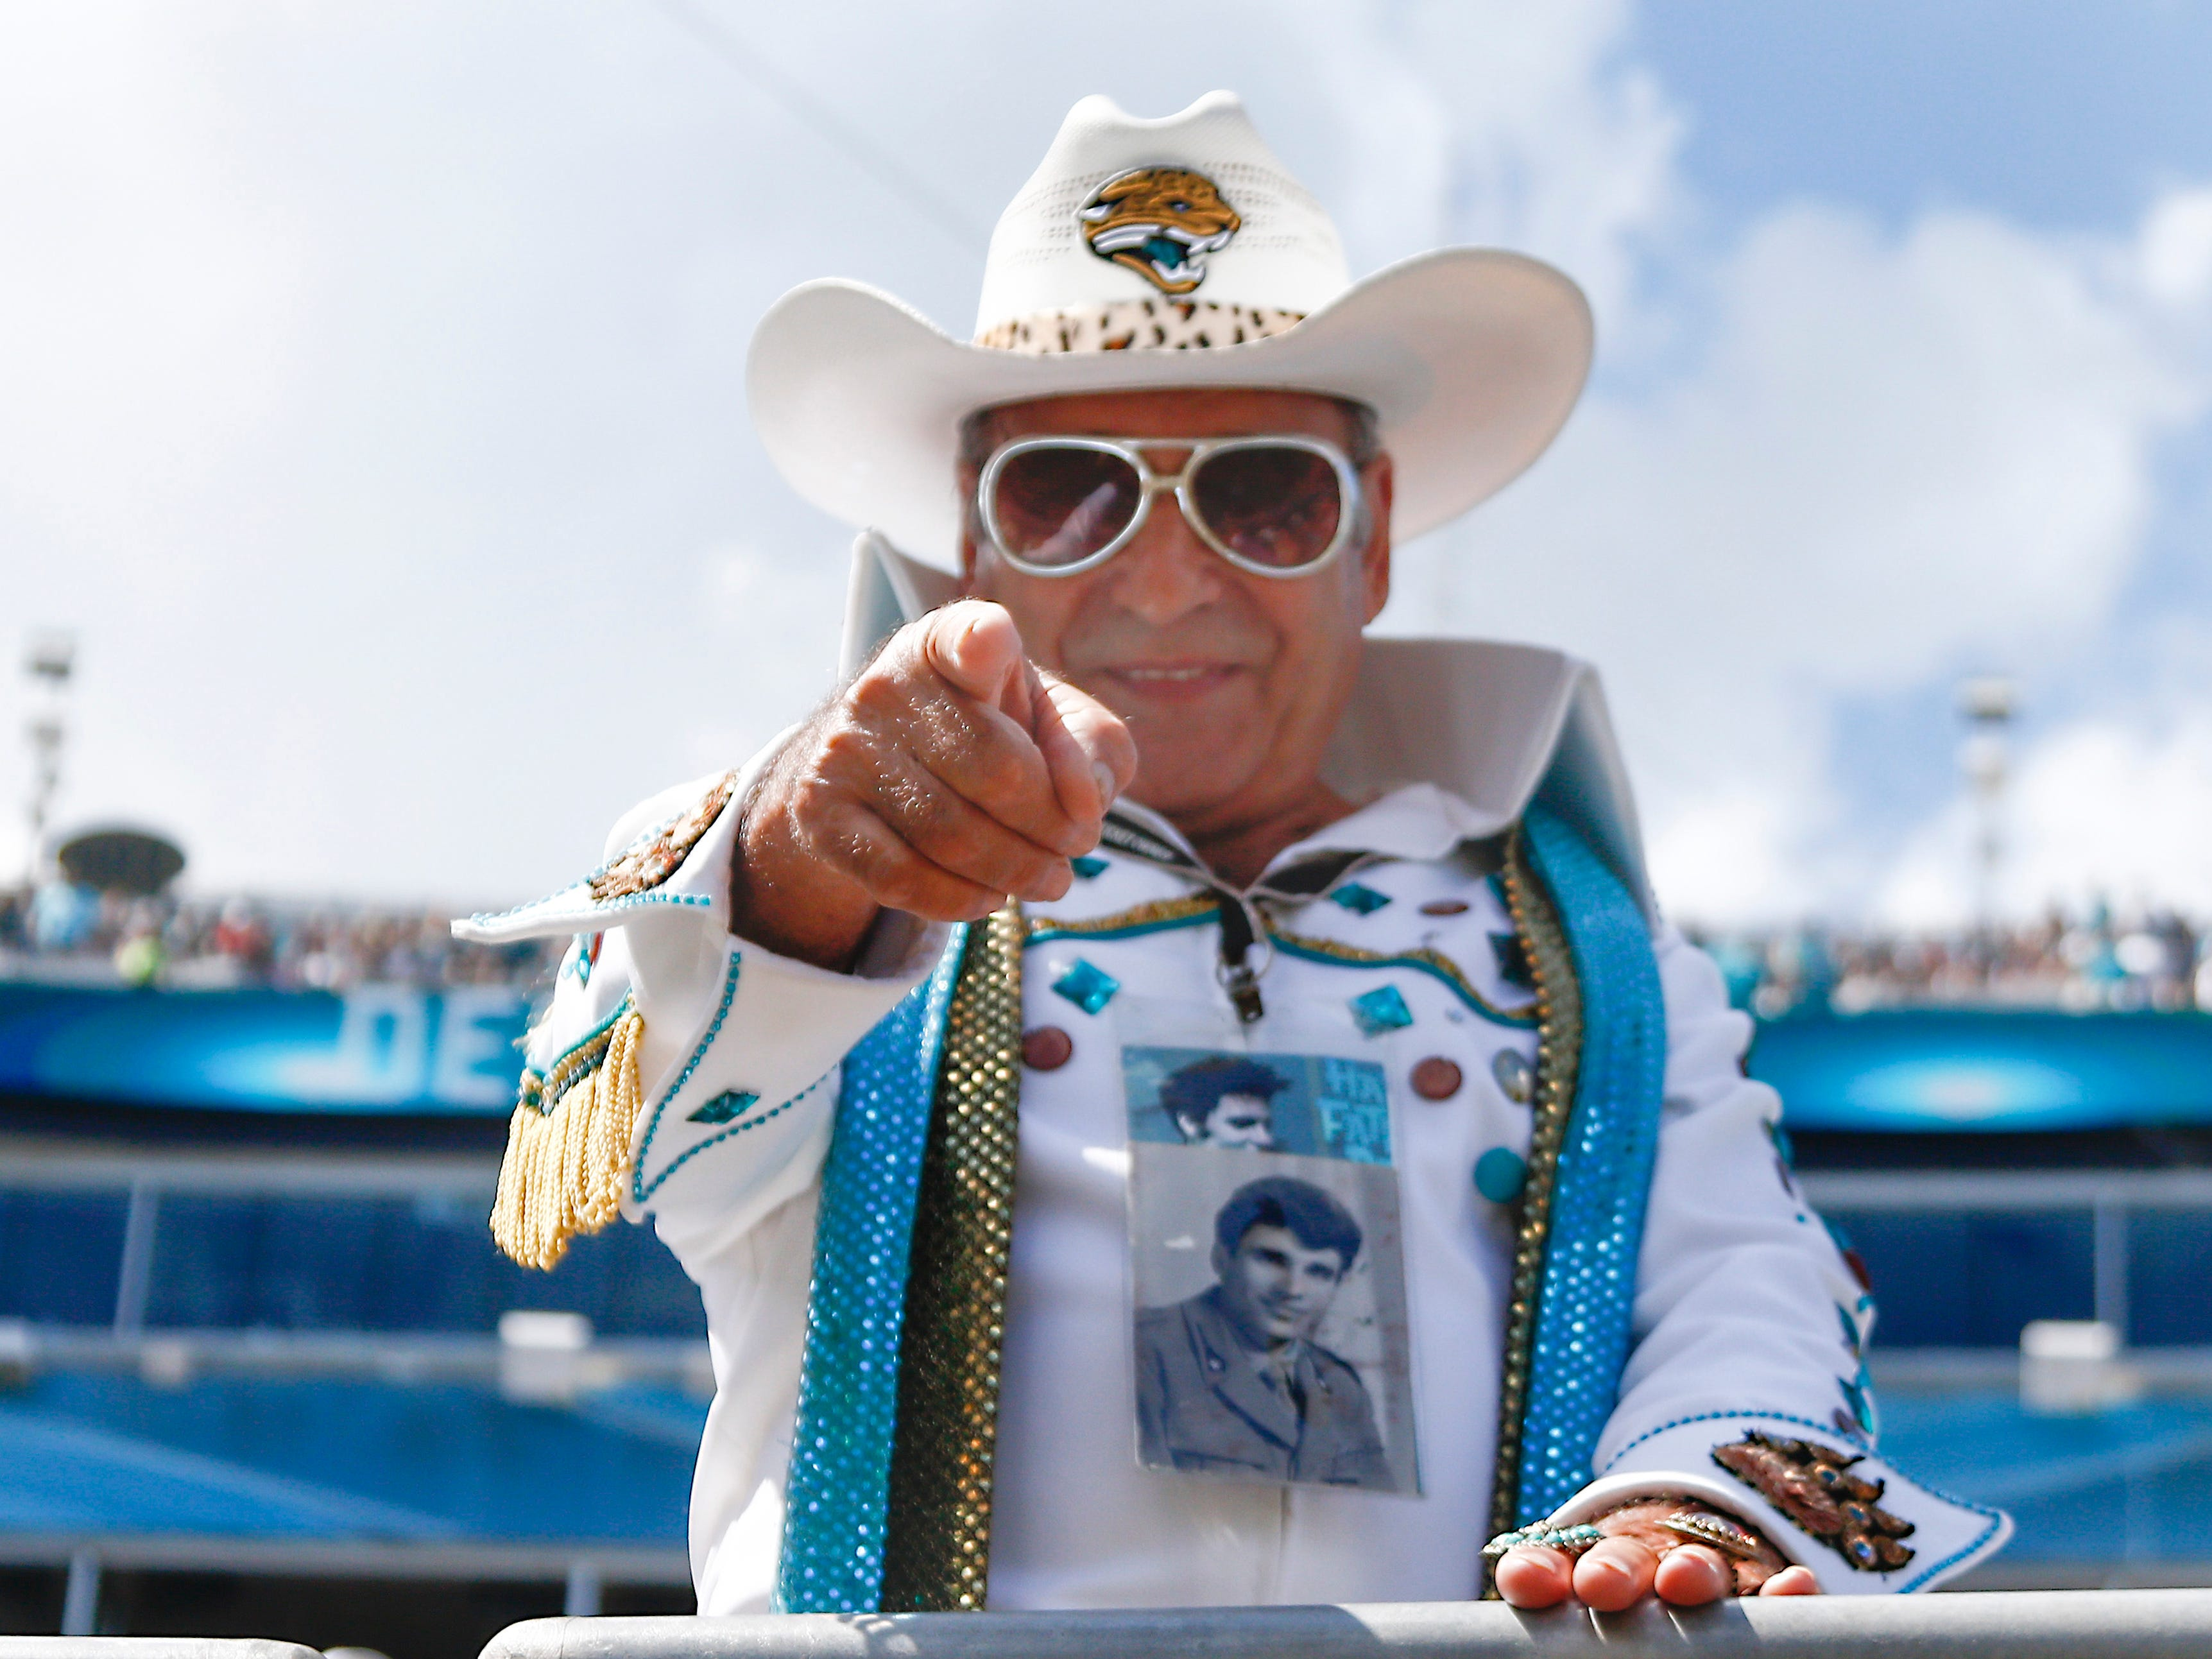 An Elvis clad fan cheers during the game between the Jacksonville Jaguars and the Tennessee Titans at TIAA Bank Field.